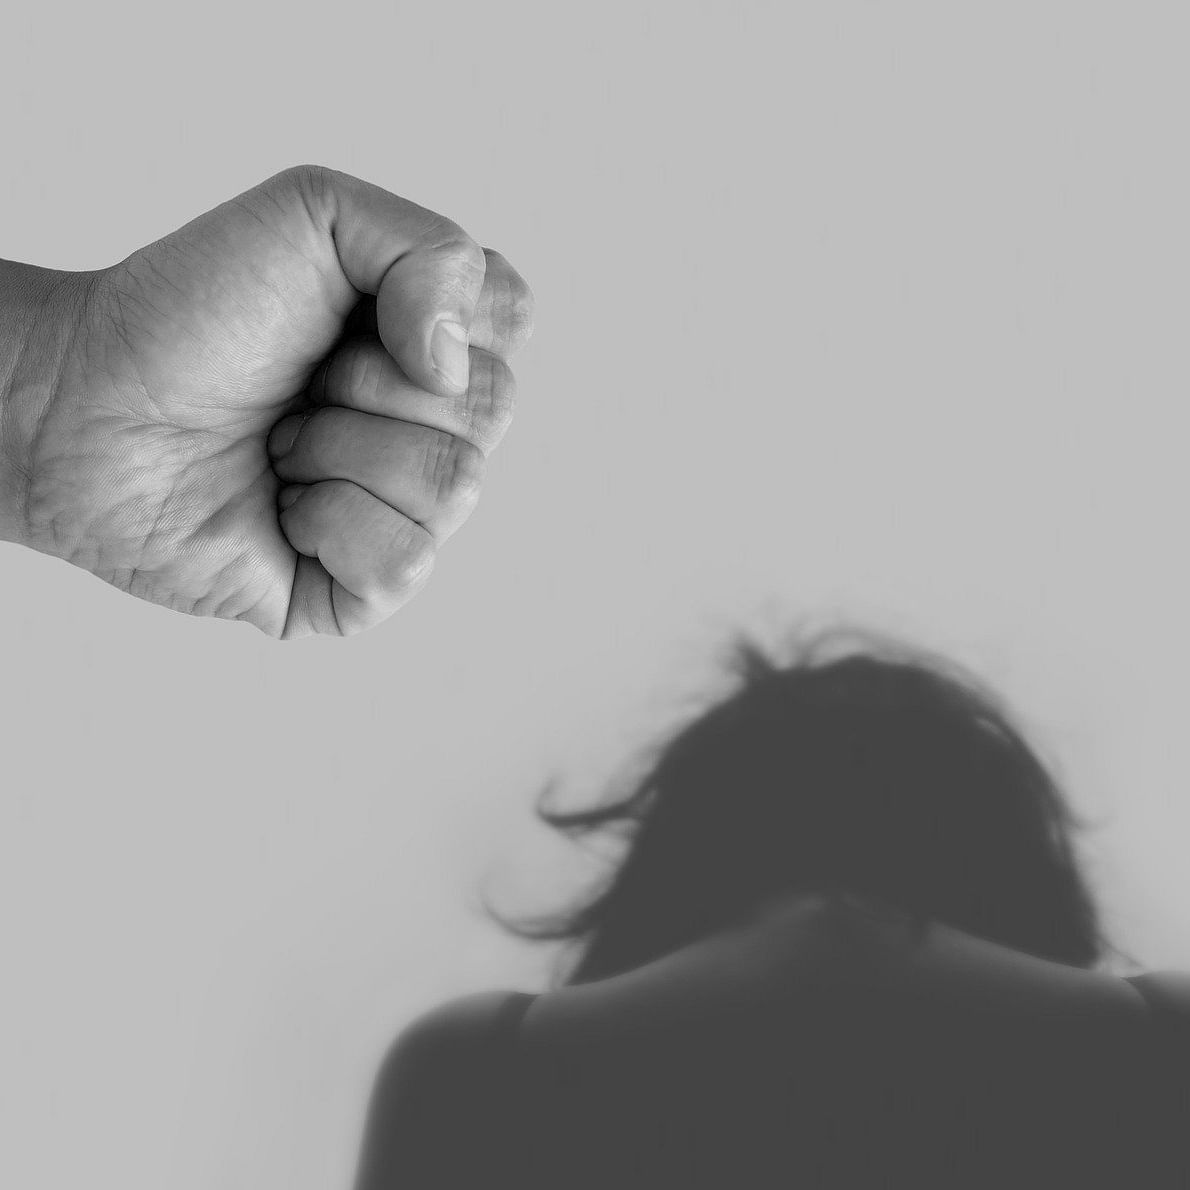 Nagaland woman molested in Ahmedabad; accused calls her 'woman from Thailand'